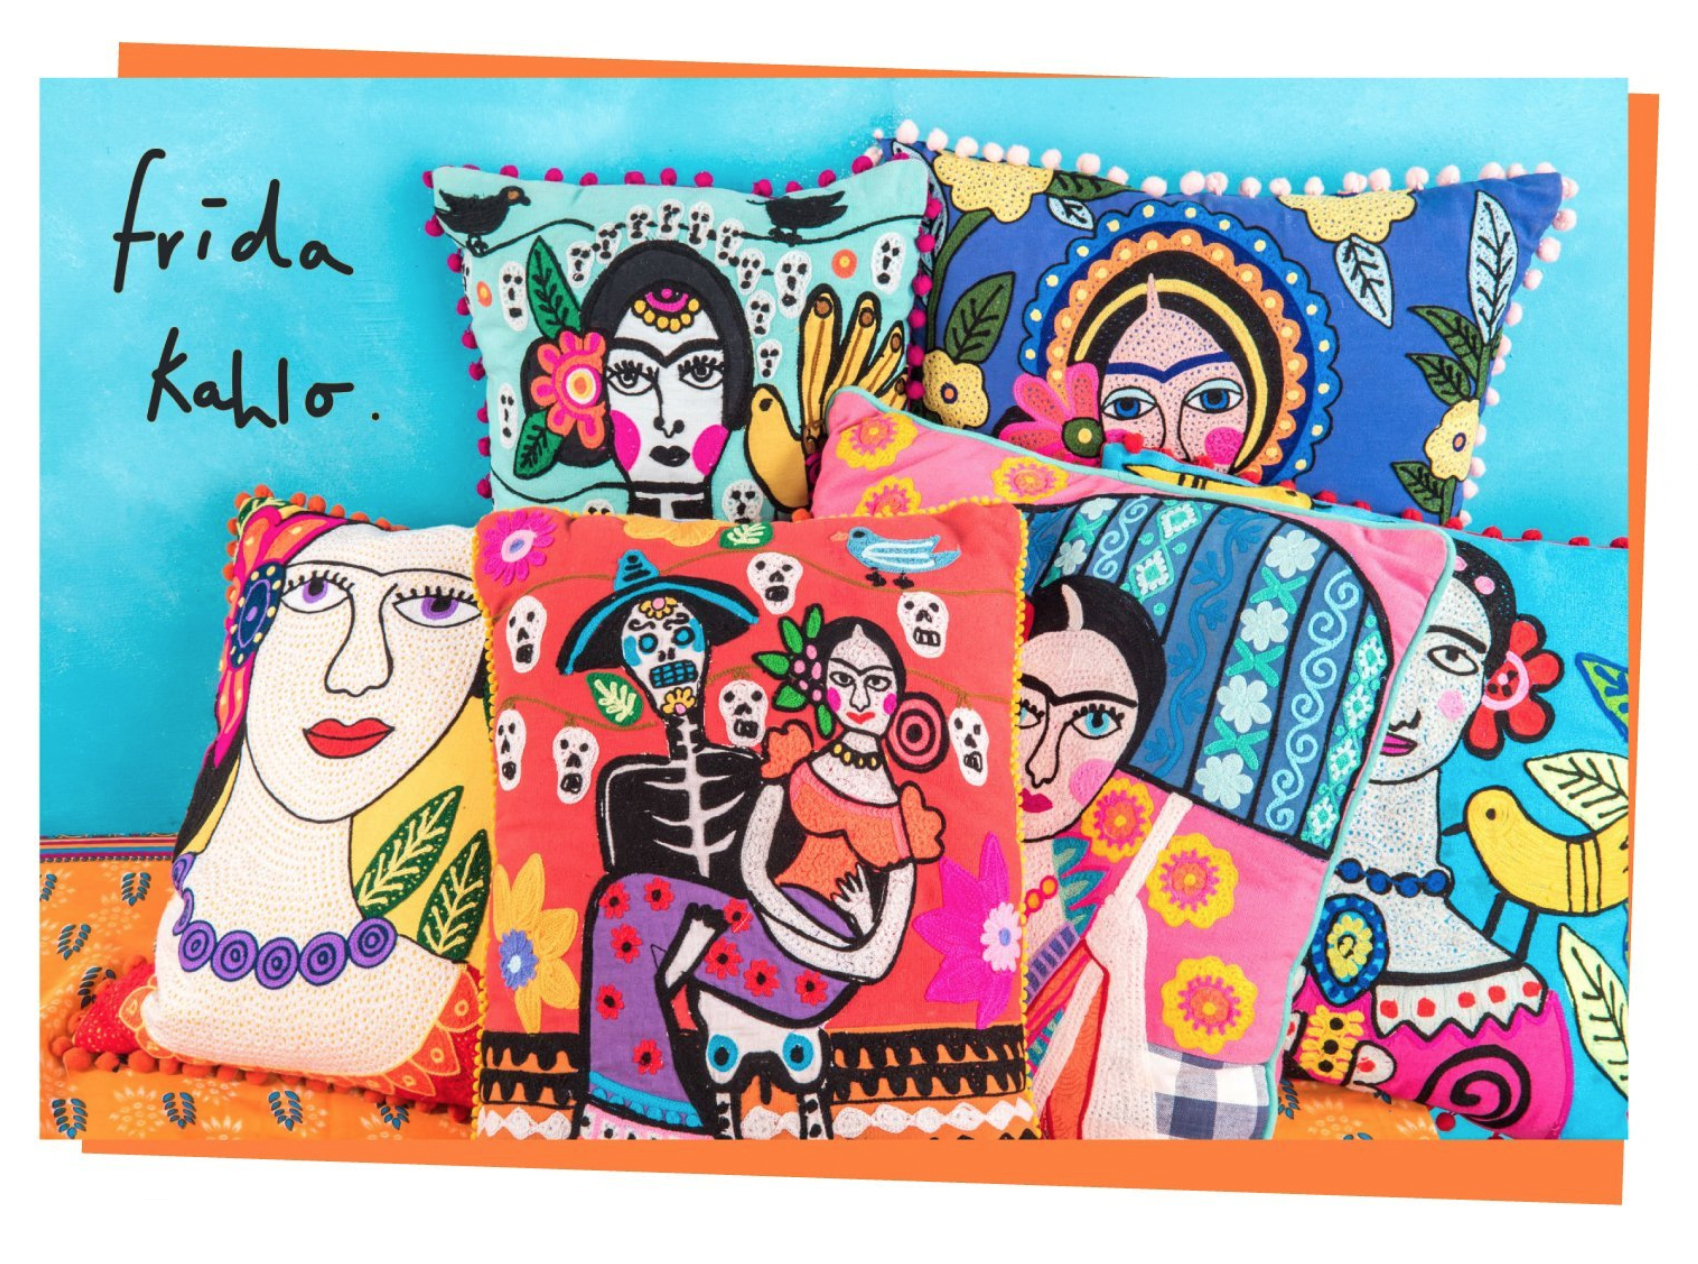 Frida Kahlo Campaign for Ian Snow Ltd